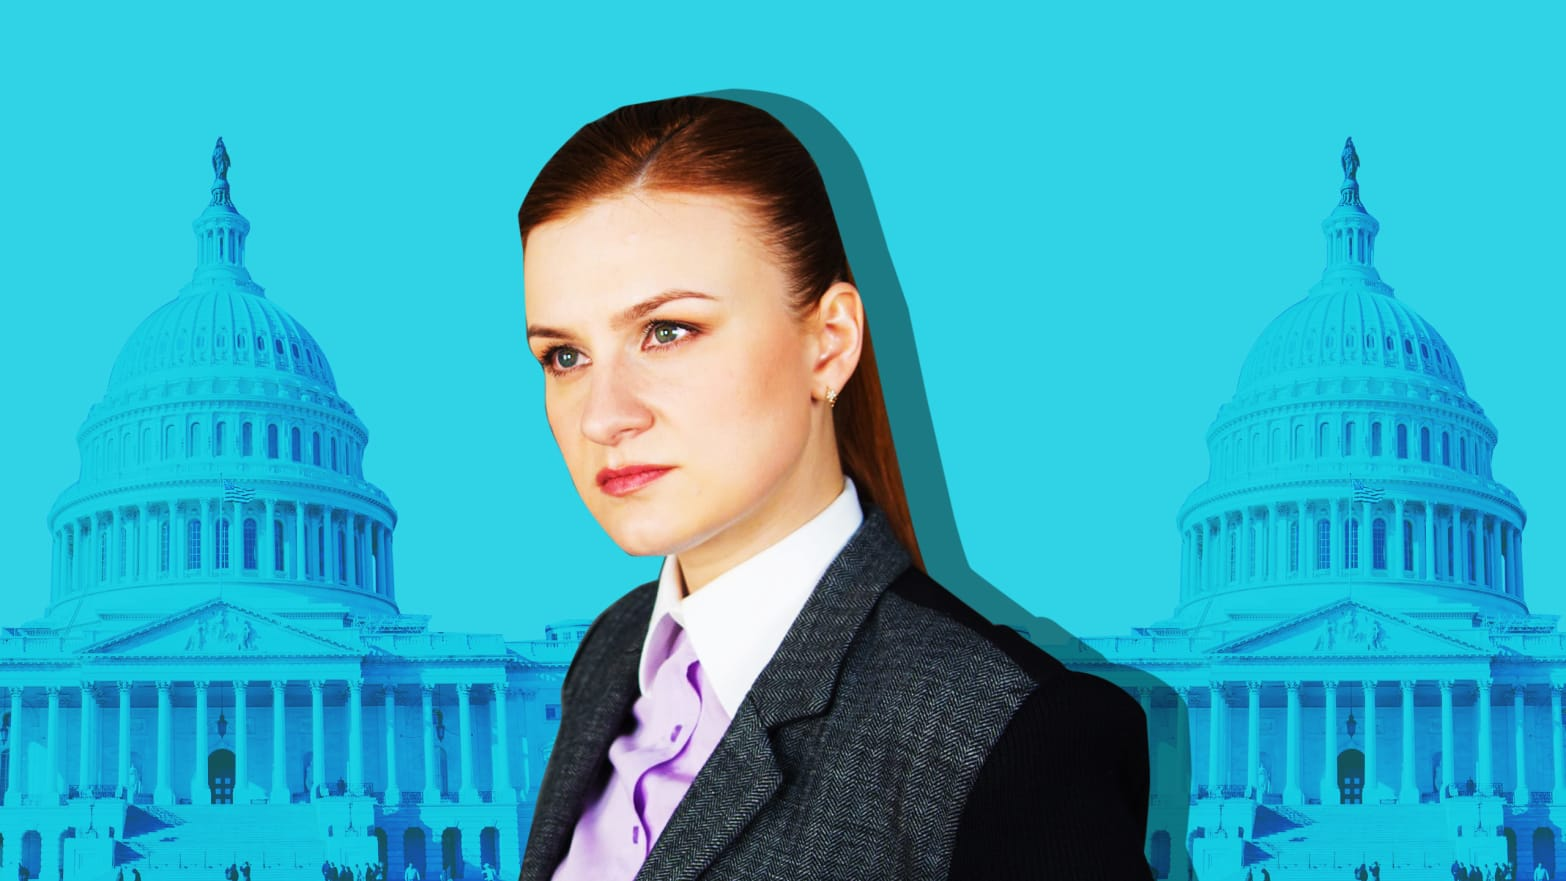 Maria Butina: Private Messages Reveal Accused Russian Spy's True Ties to D.C. Wise Man